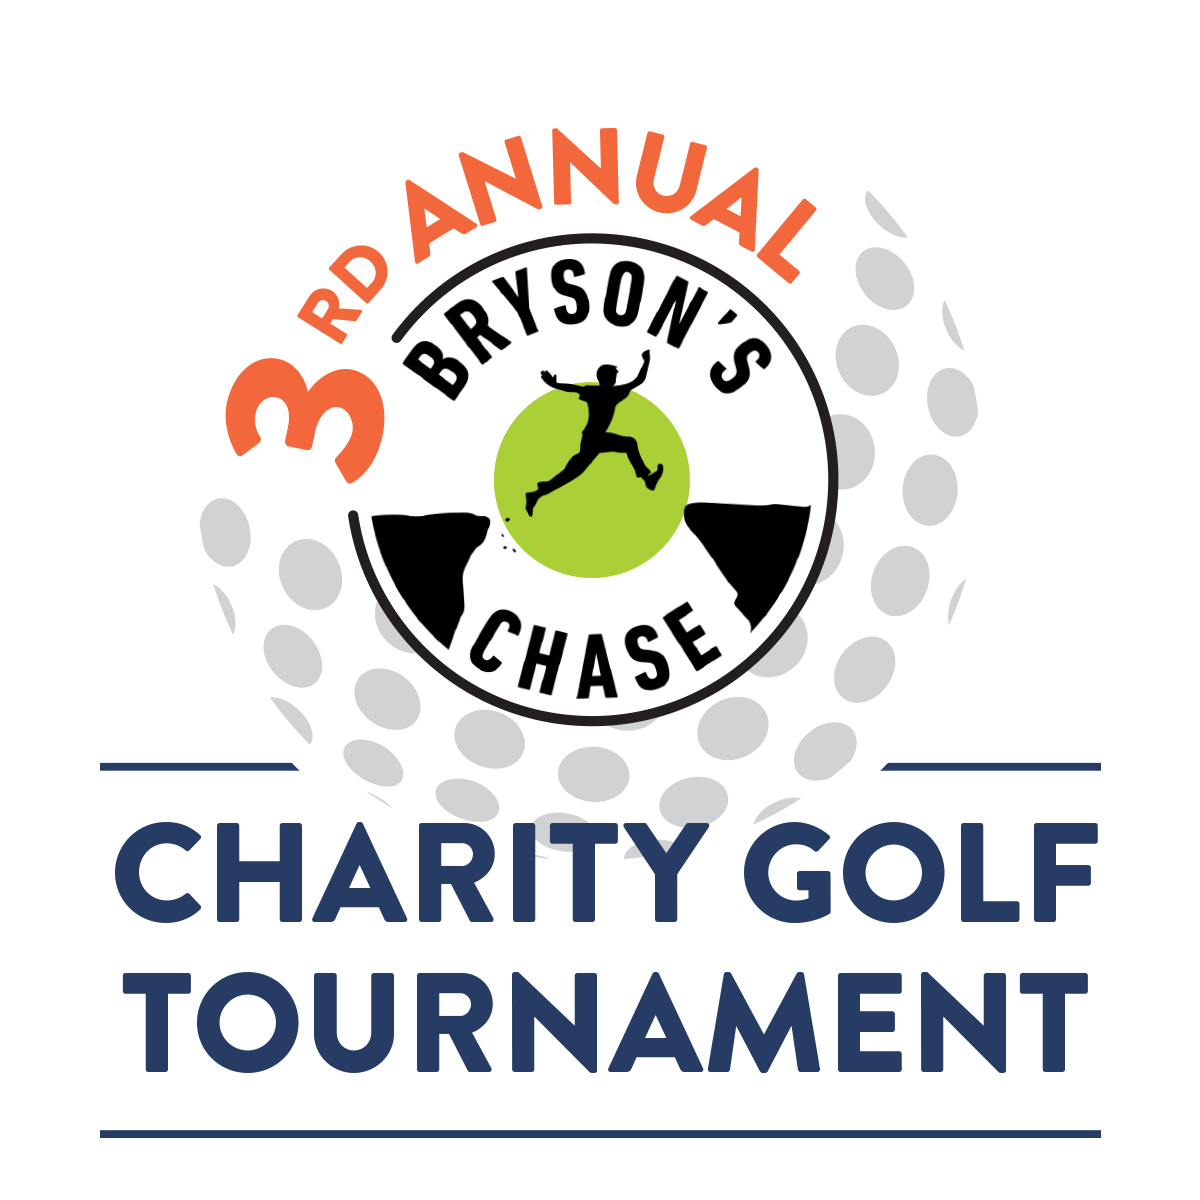 3rd annual Bryson's Chase Golf Tournament Presented by Mortgage Solutions Financial logo